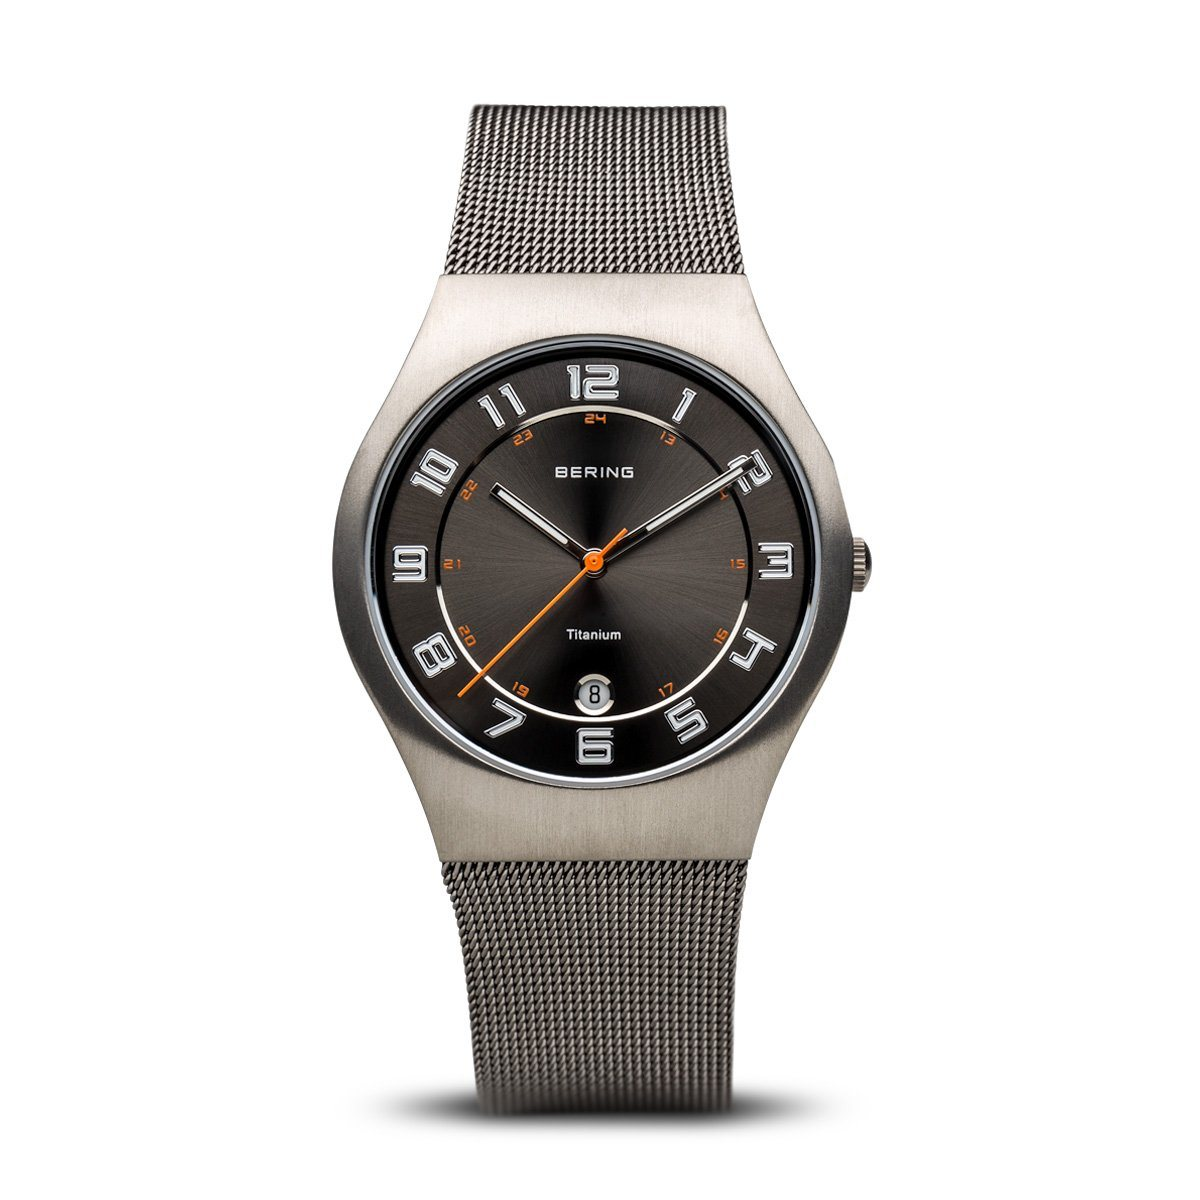 Men's Bering Titanium Watch 11937-007 Watches Bering